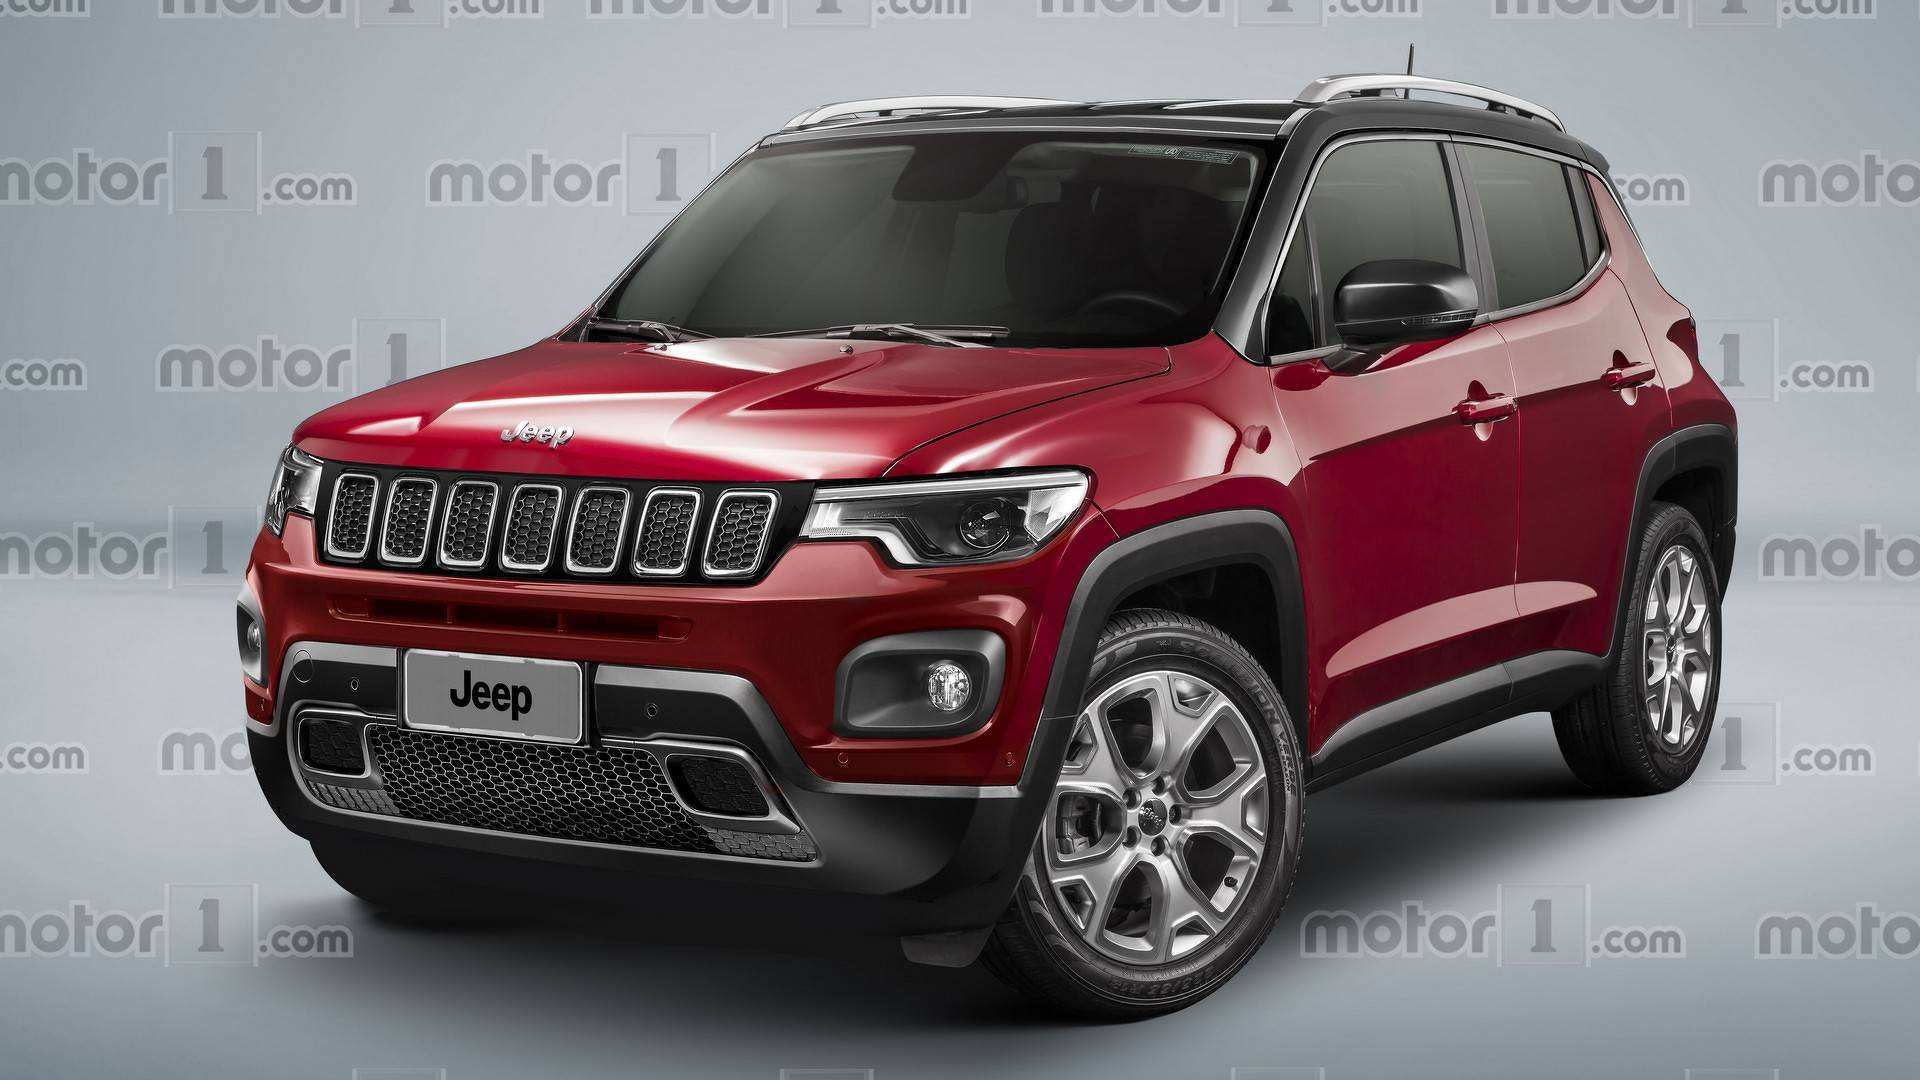 36 A Jeep New Suv 2020 Rumors